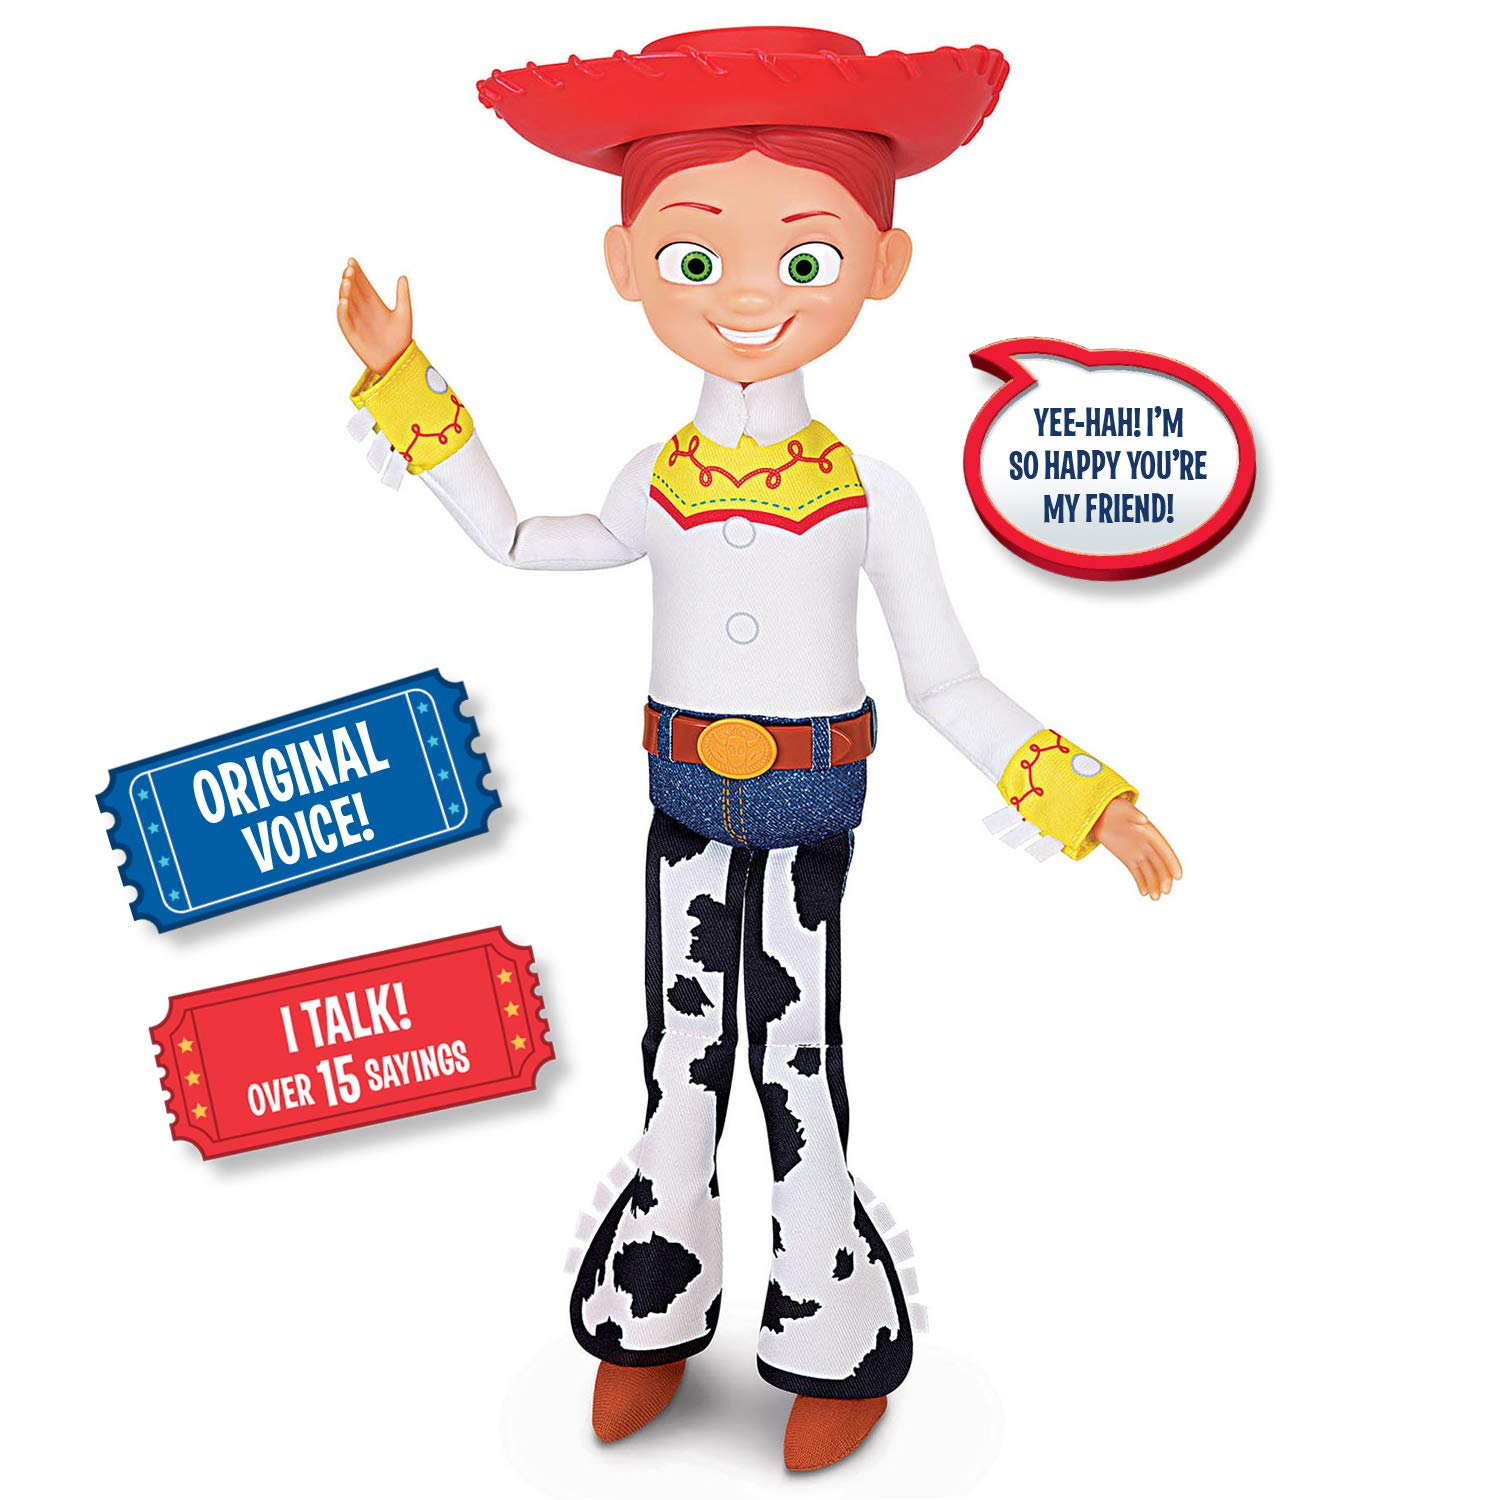 Toy Story Disney Pixar 4 Jessie Cowgirl Action Figure